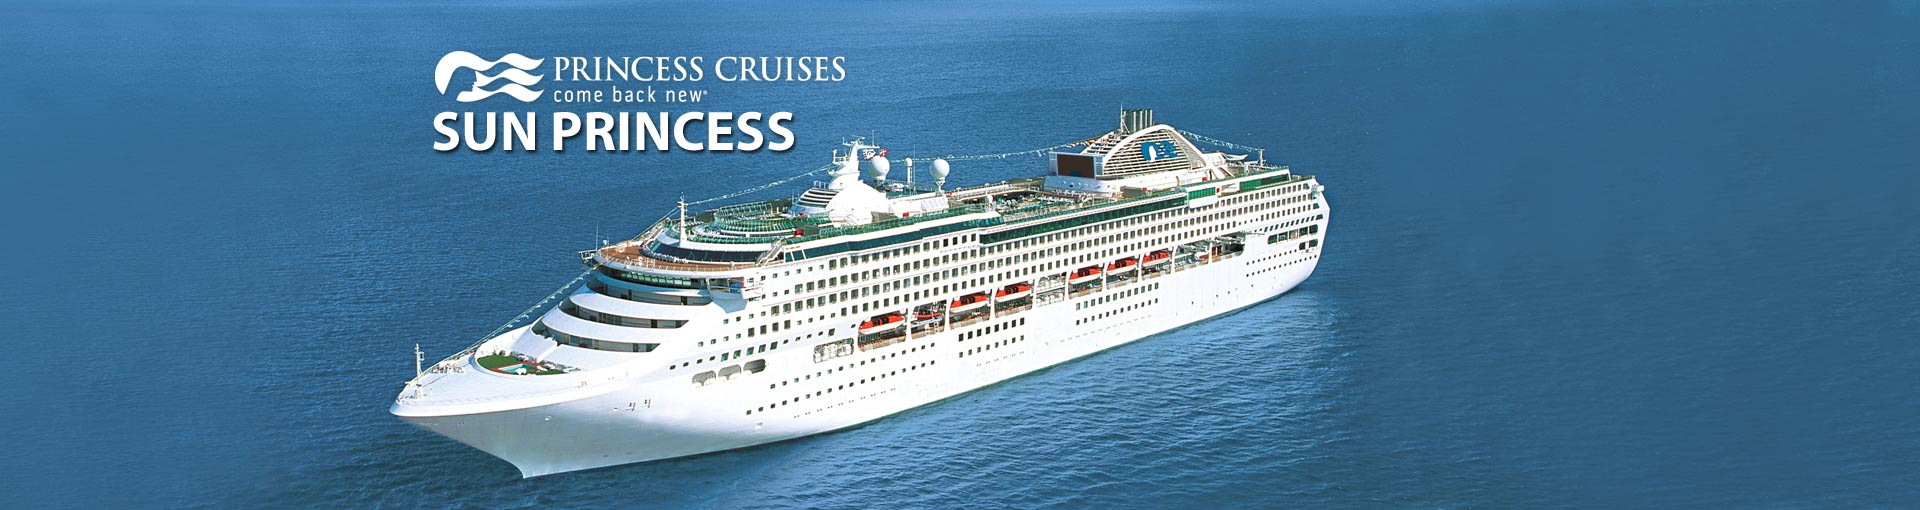 Princess Cruises Sun Princess cruise ship